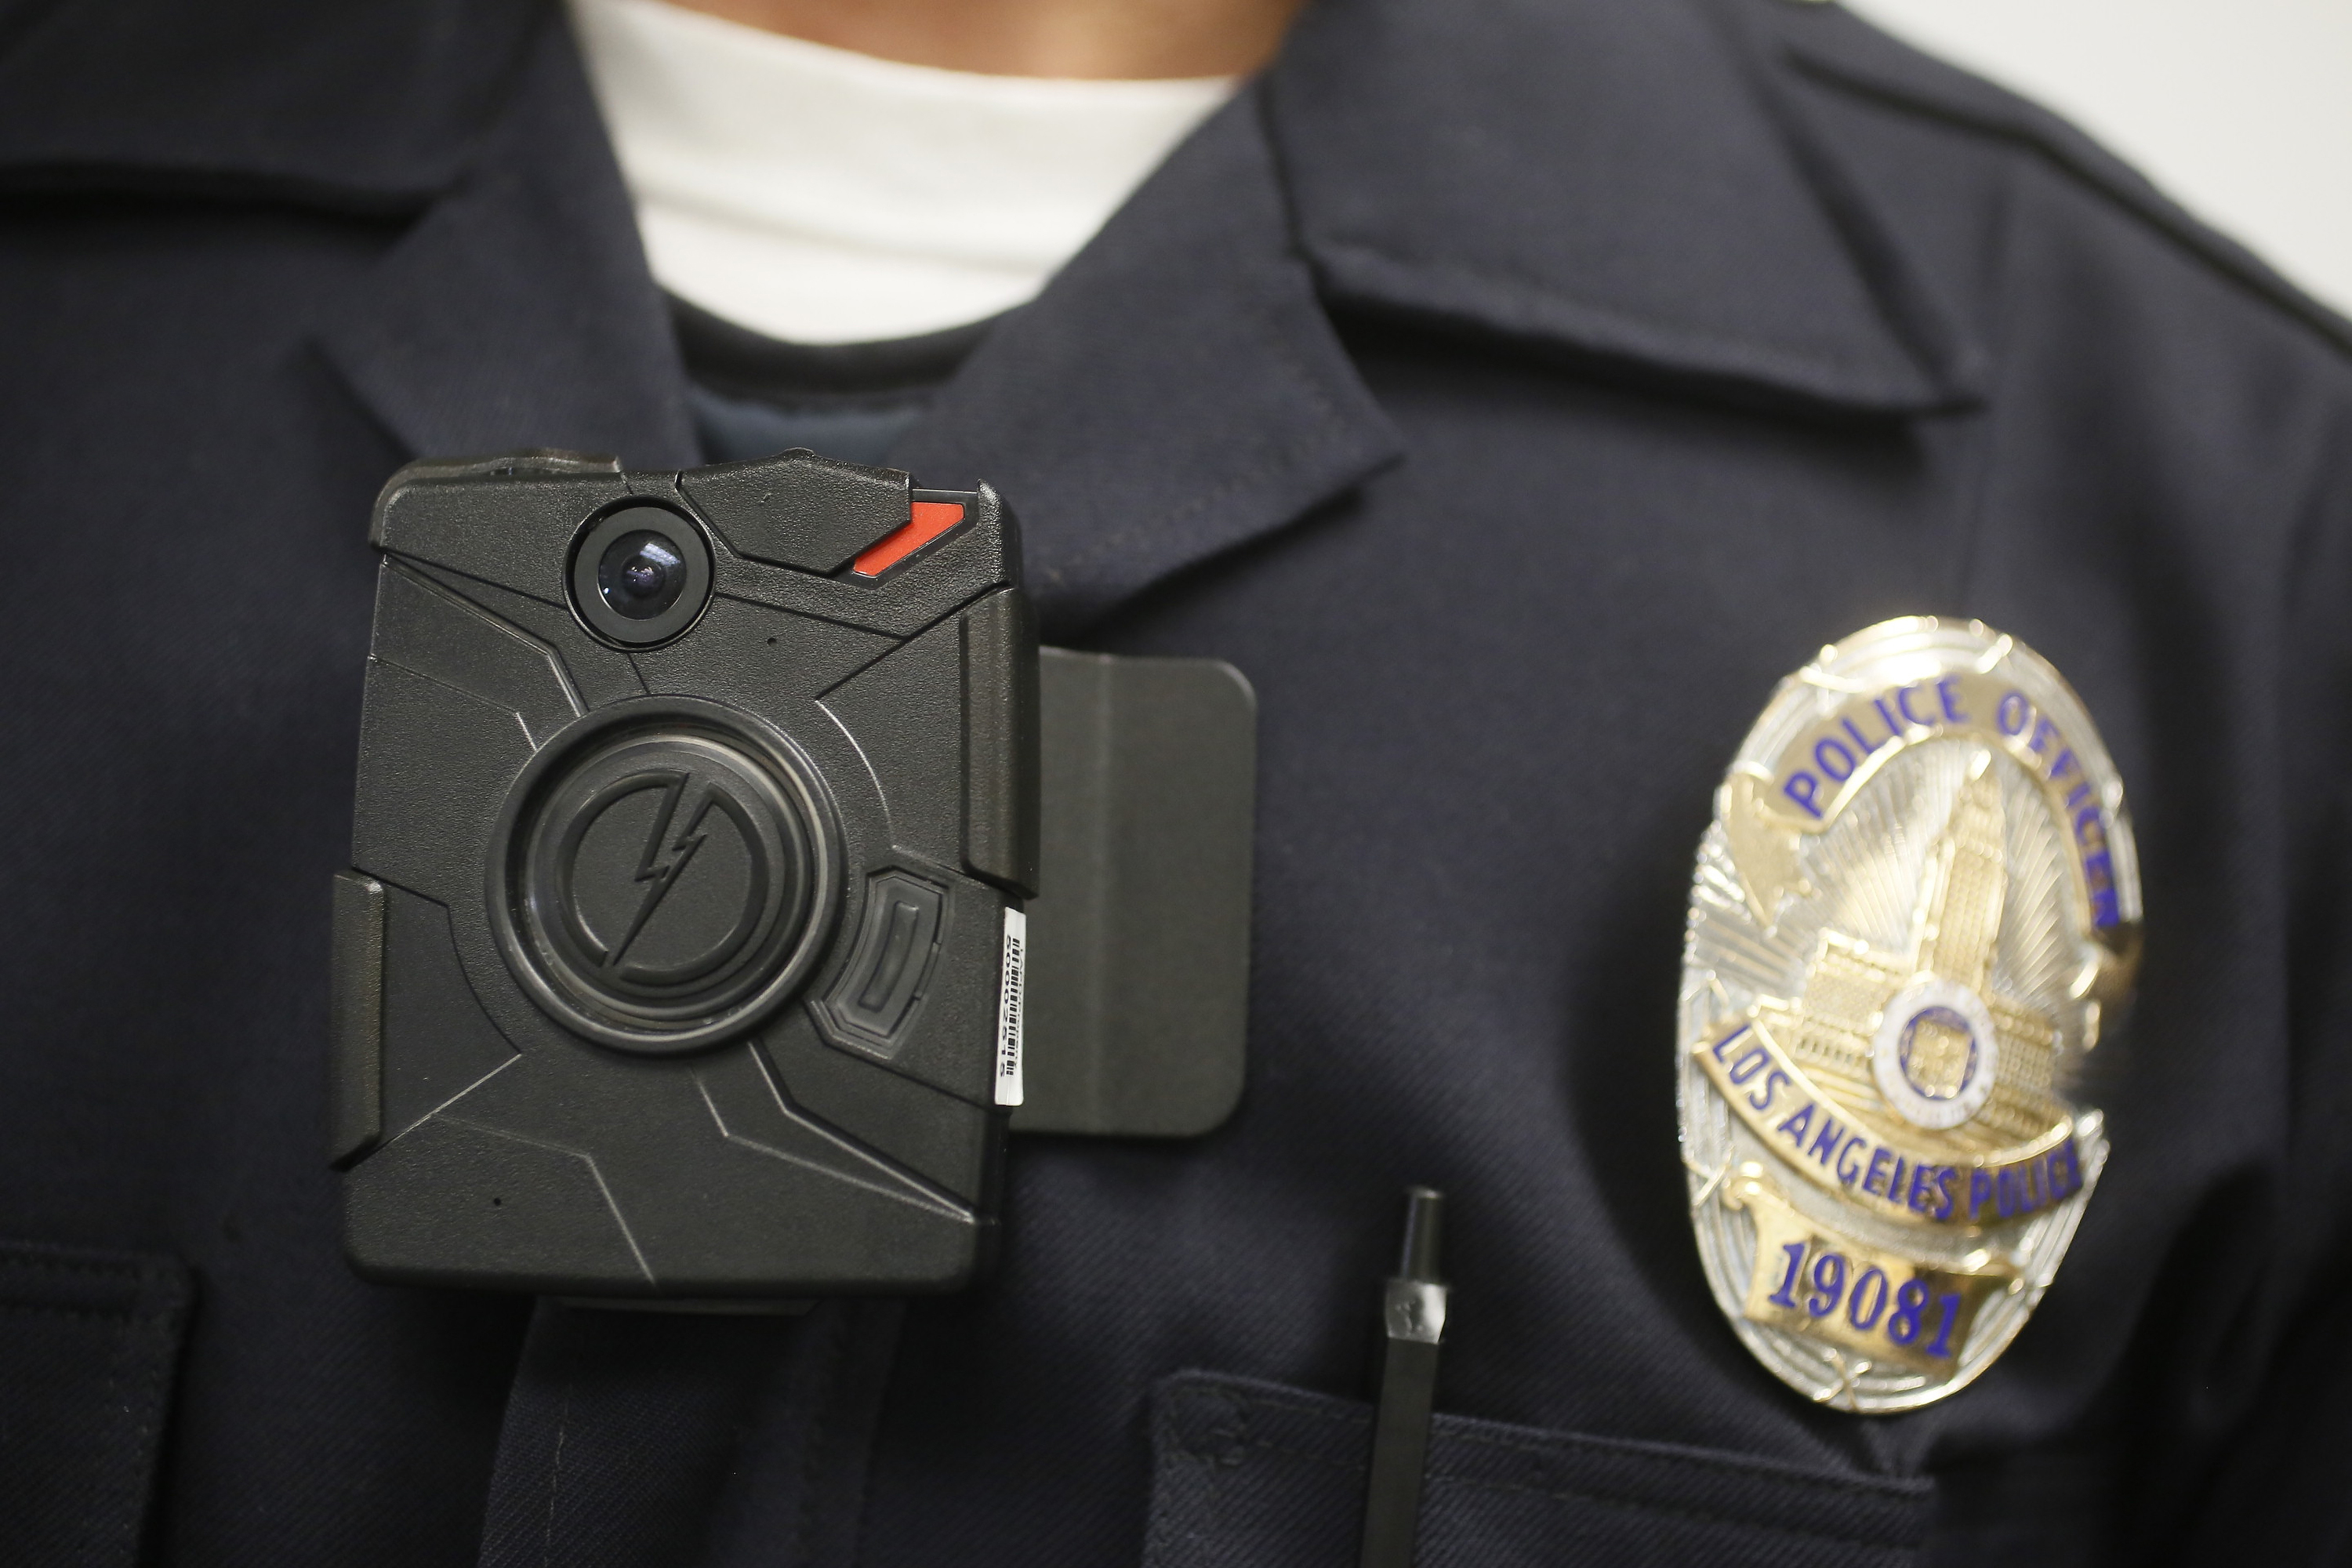 Should Boston Police Officers Wear Body Cameras?